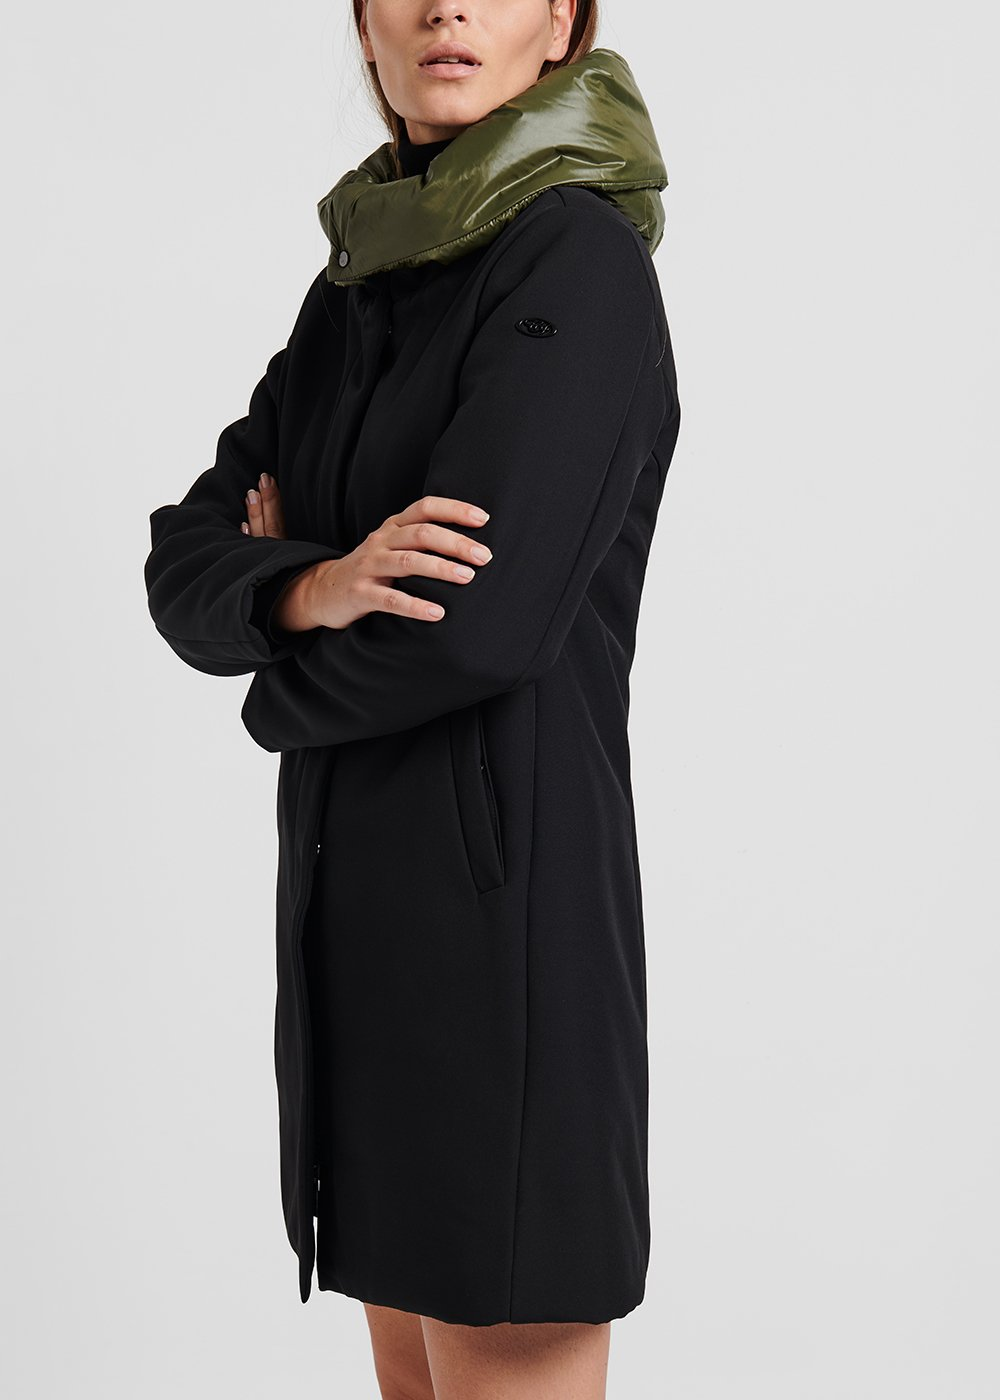 Coat in technical fabric with hood - Black / Grape - Woman